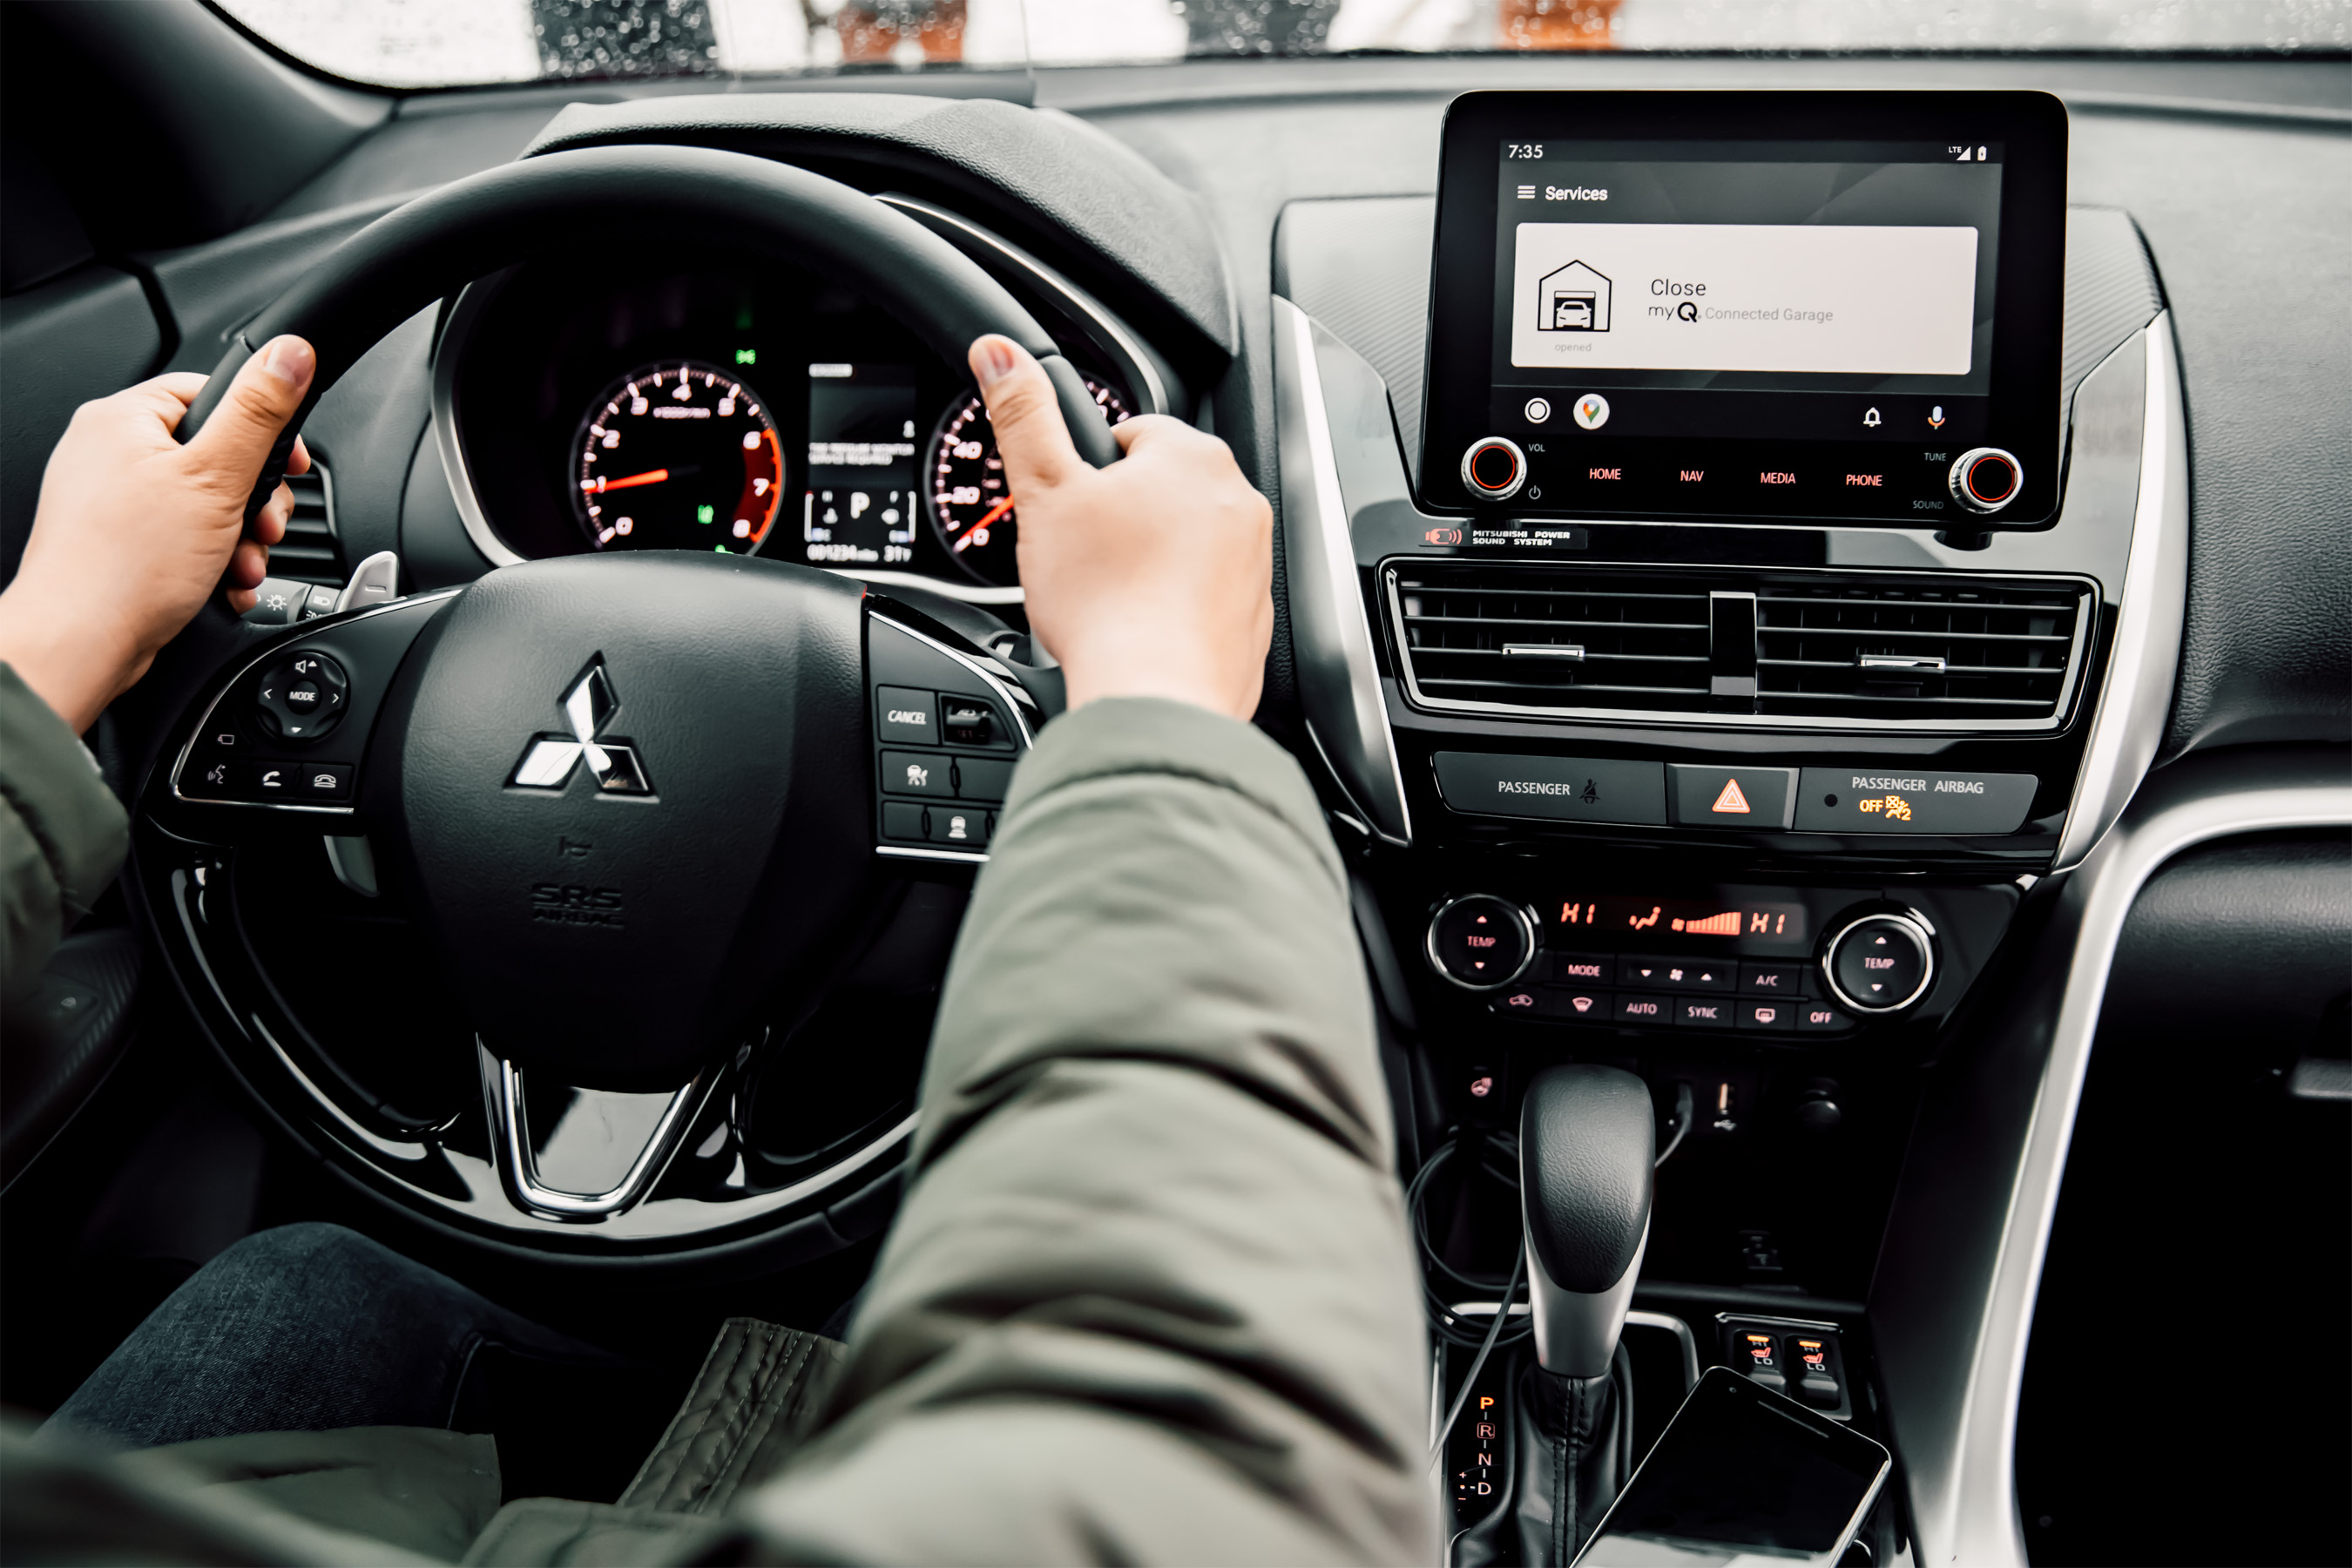 Safely open and close your garage door from anywhere with convenient in-dash touchscreen control.